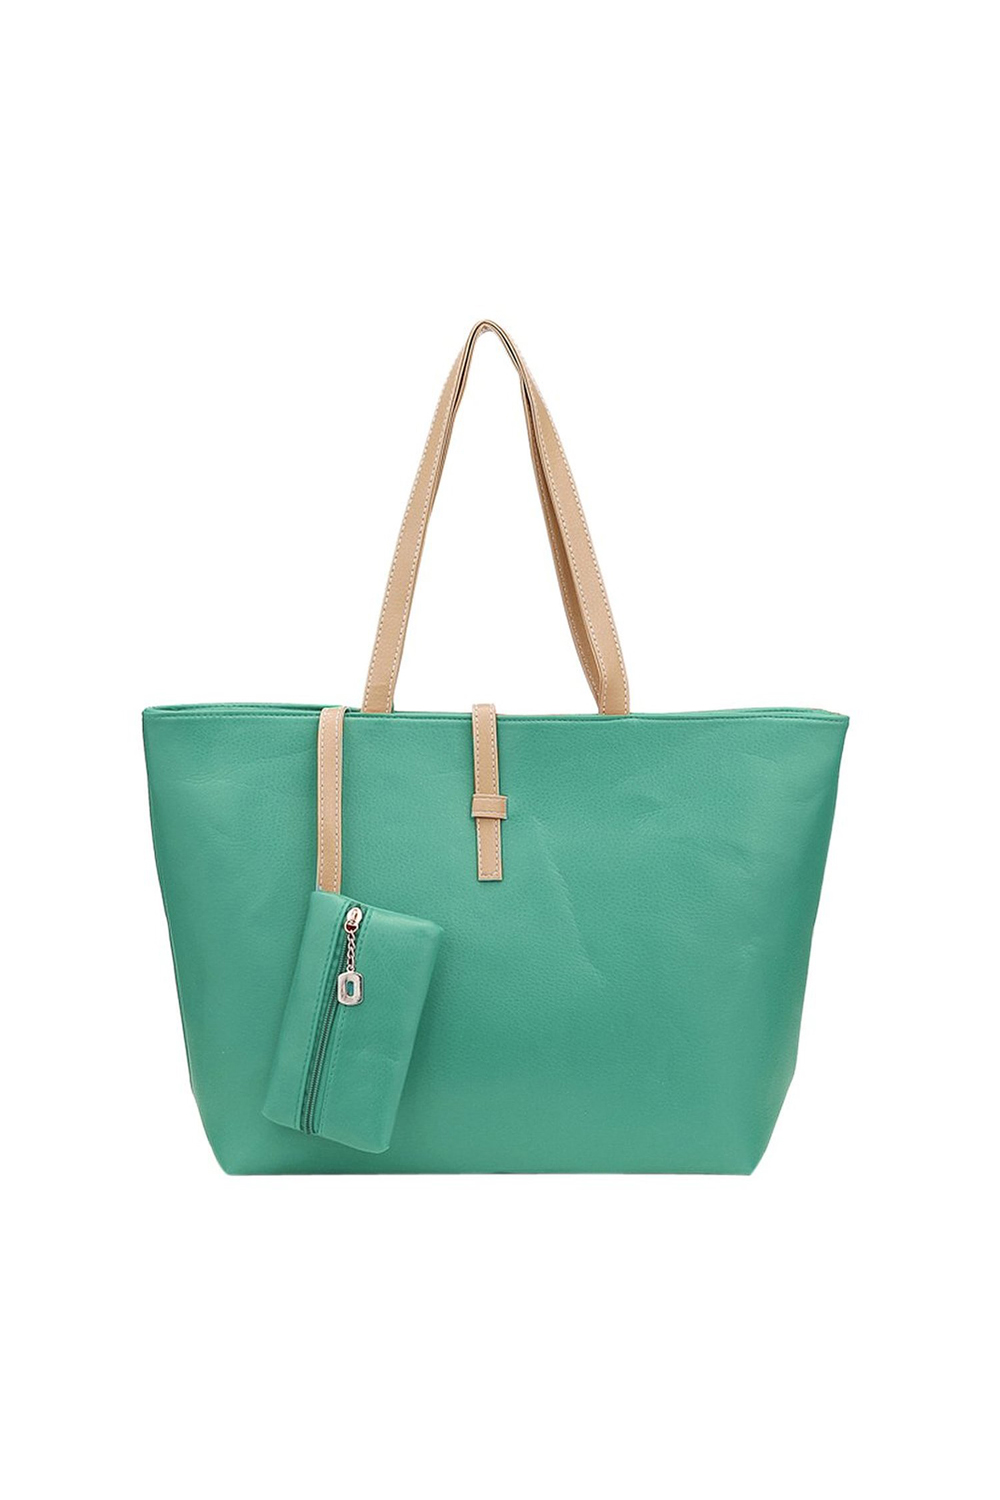 10Pcsgreen Big Handbag Shoulder Bag PU Leather Tote With Small Wallet Bag For Women